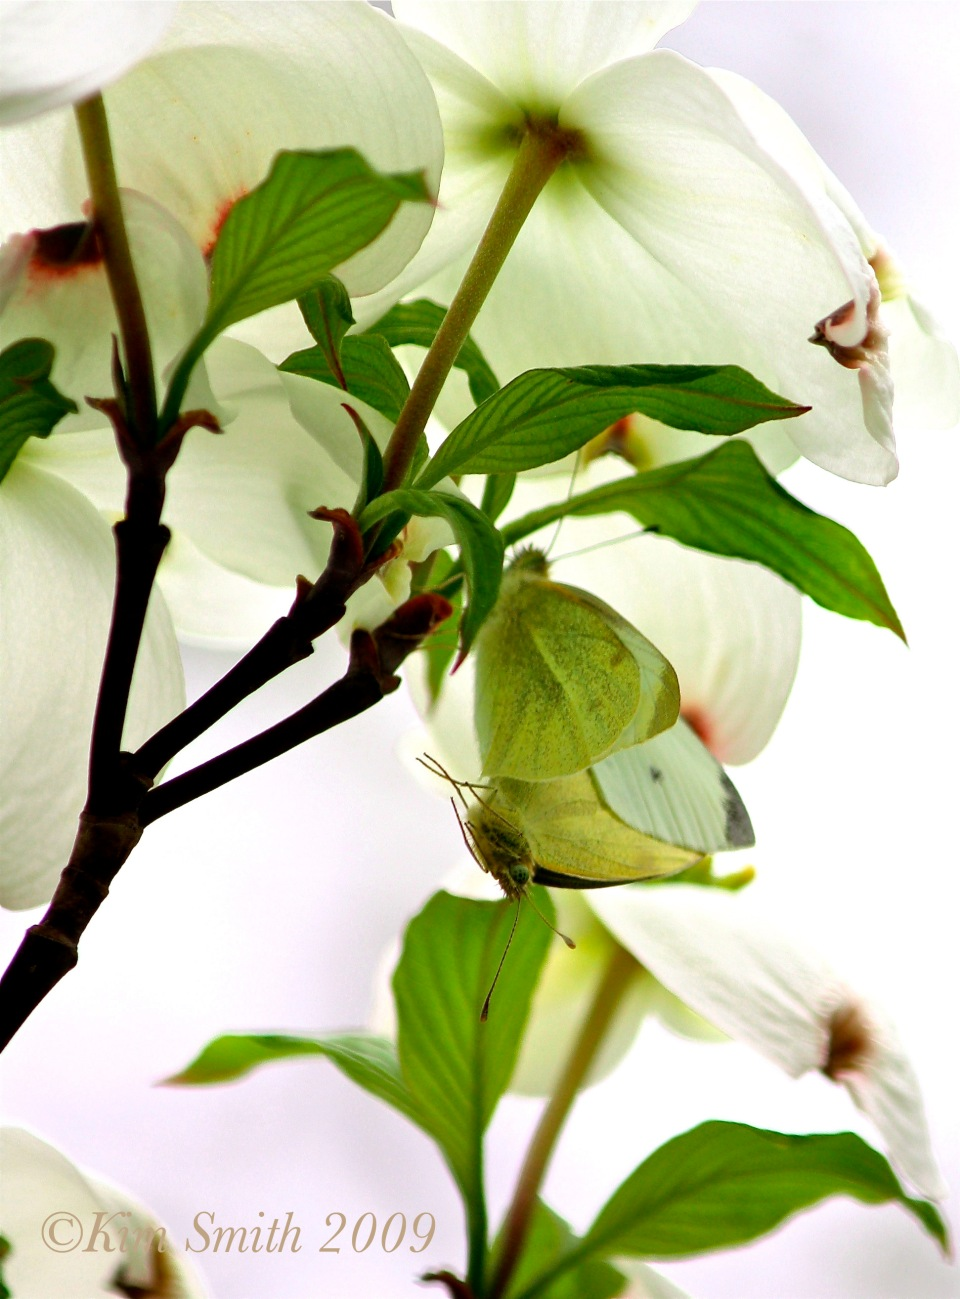 Cabbage White Butterflies mating in Cornus florida ©Kim Smith 2009